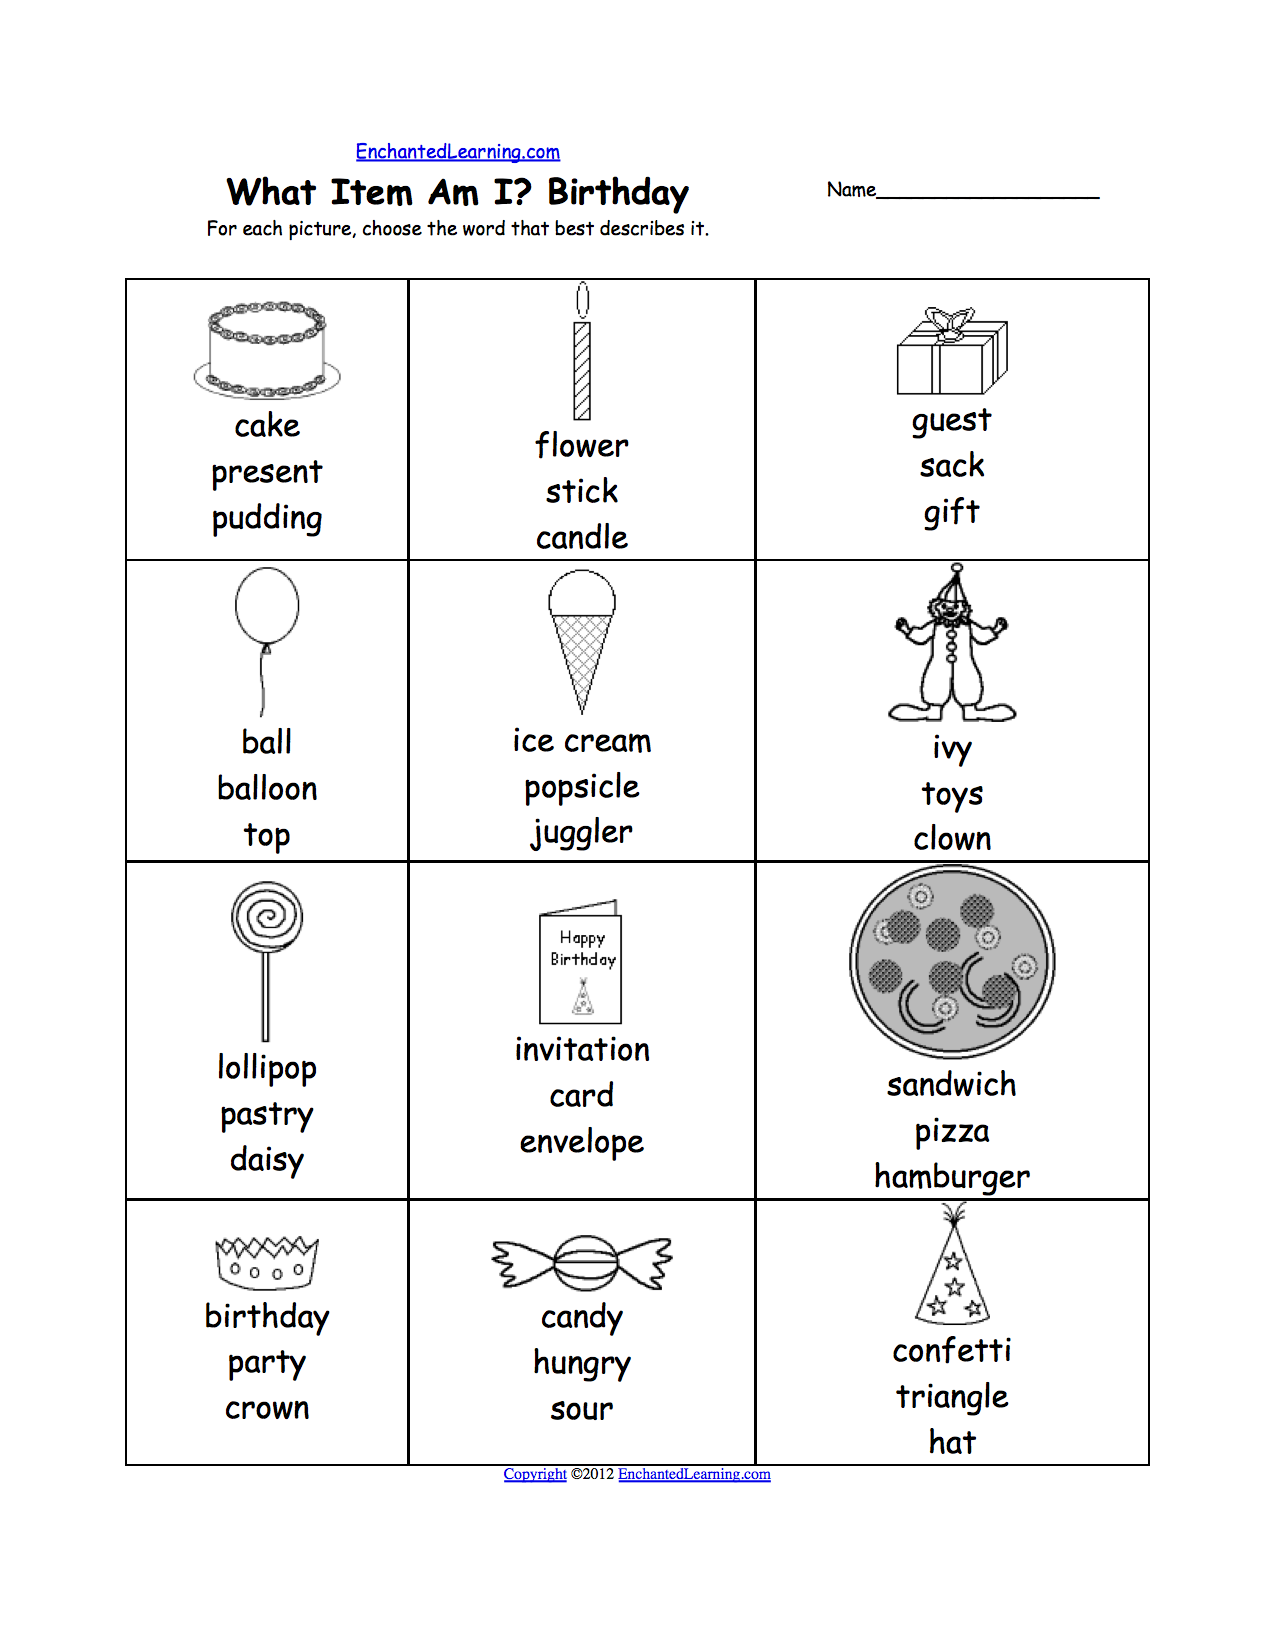 spelling worksheets birthday activities at com for each birthday party picture choose the word that best describes it or go to the answers